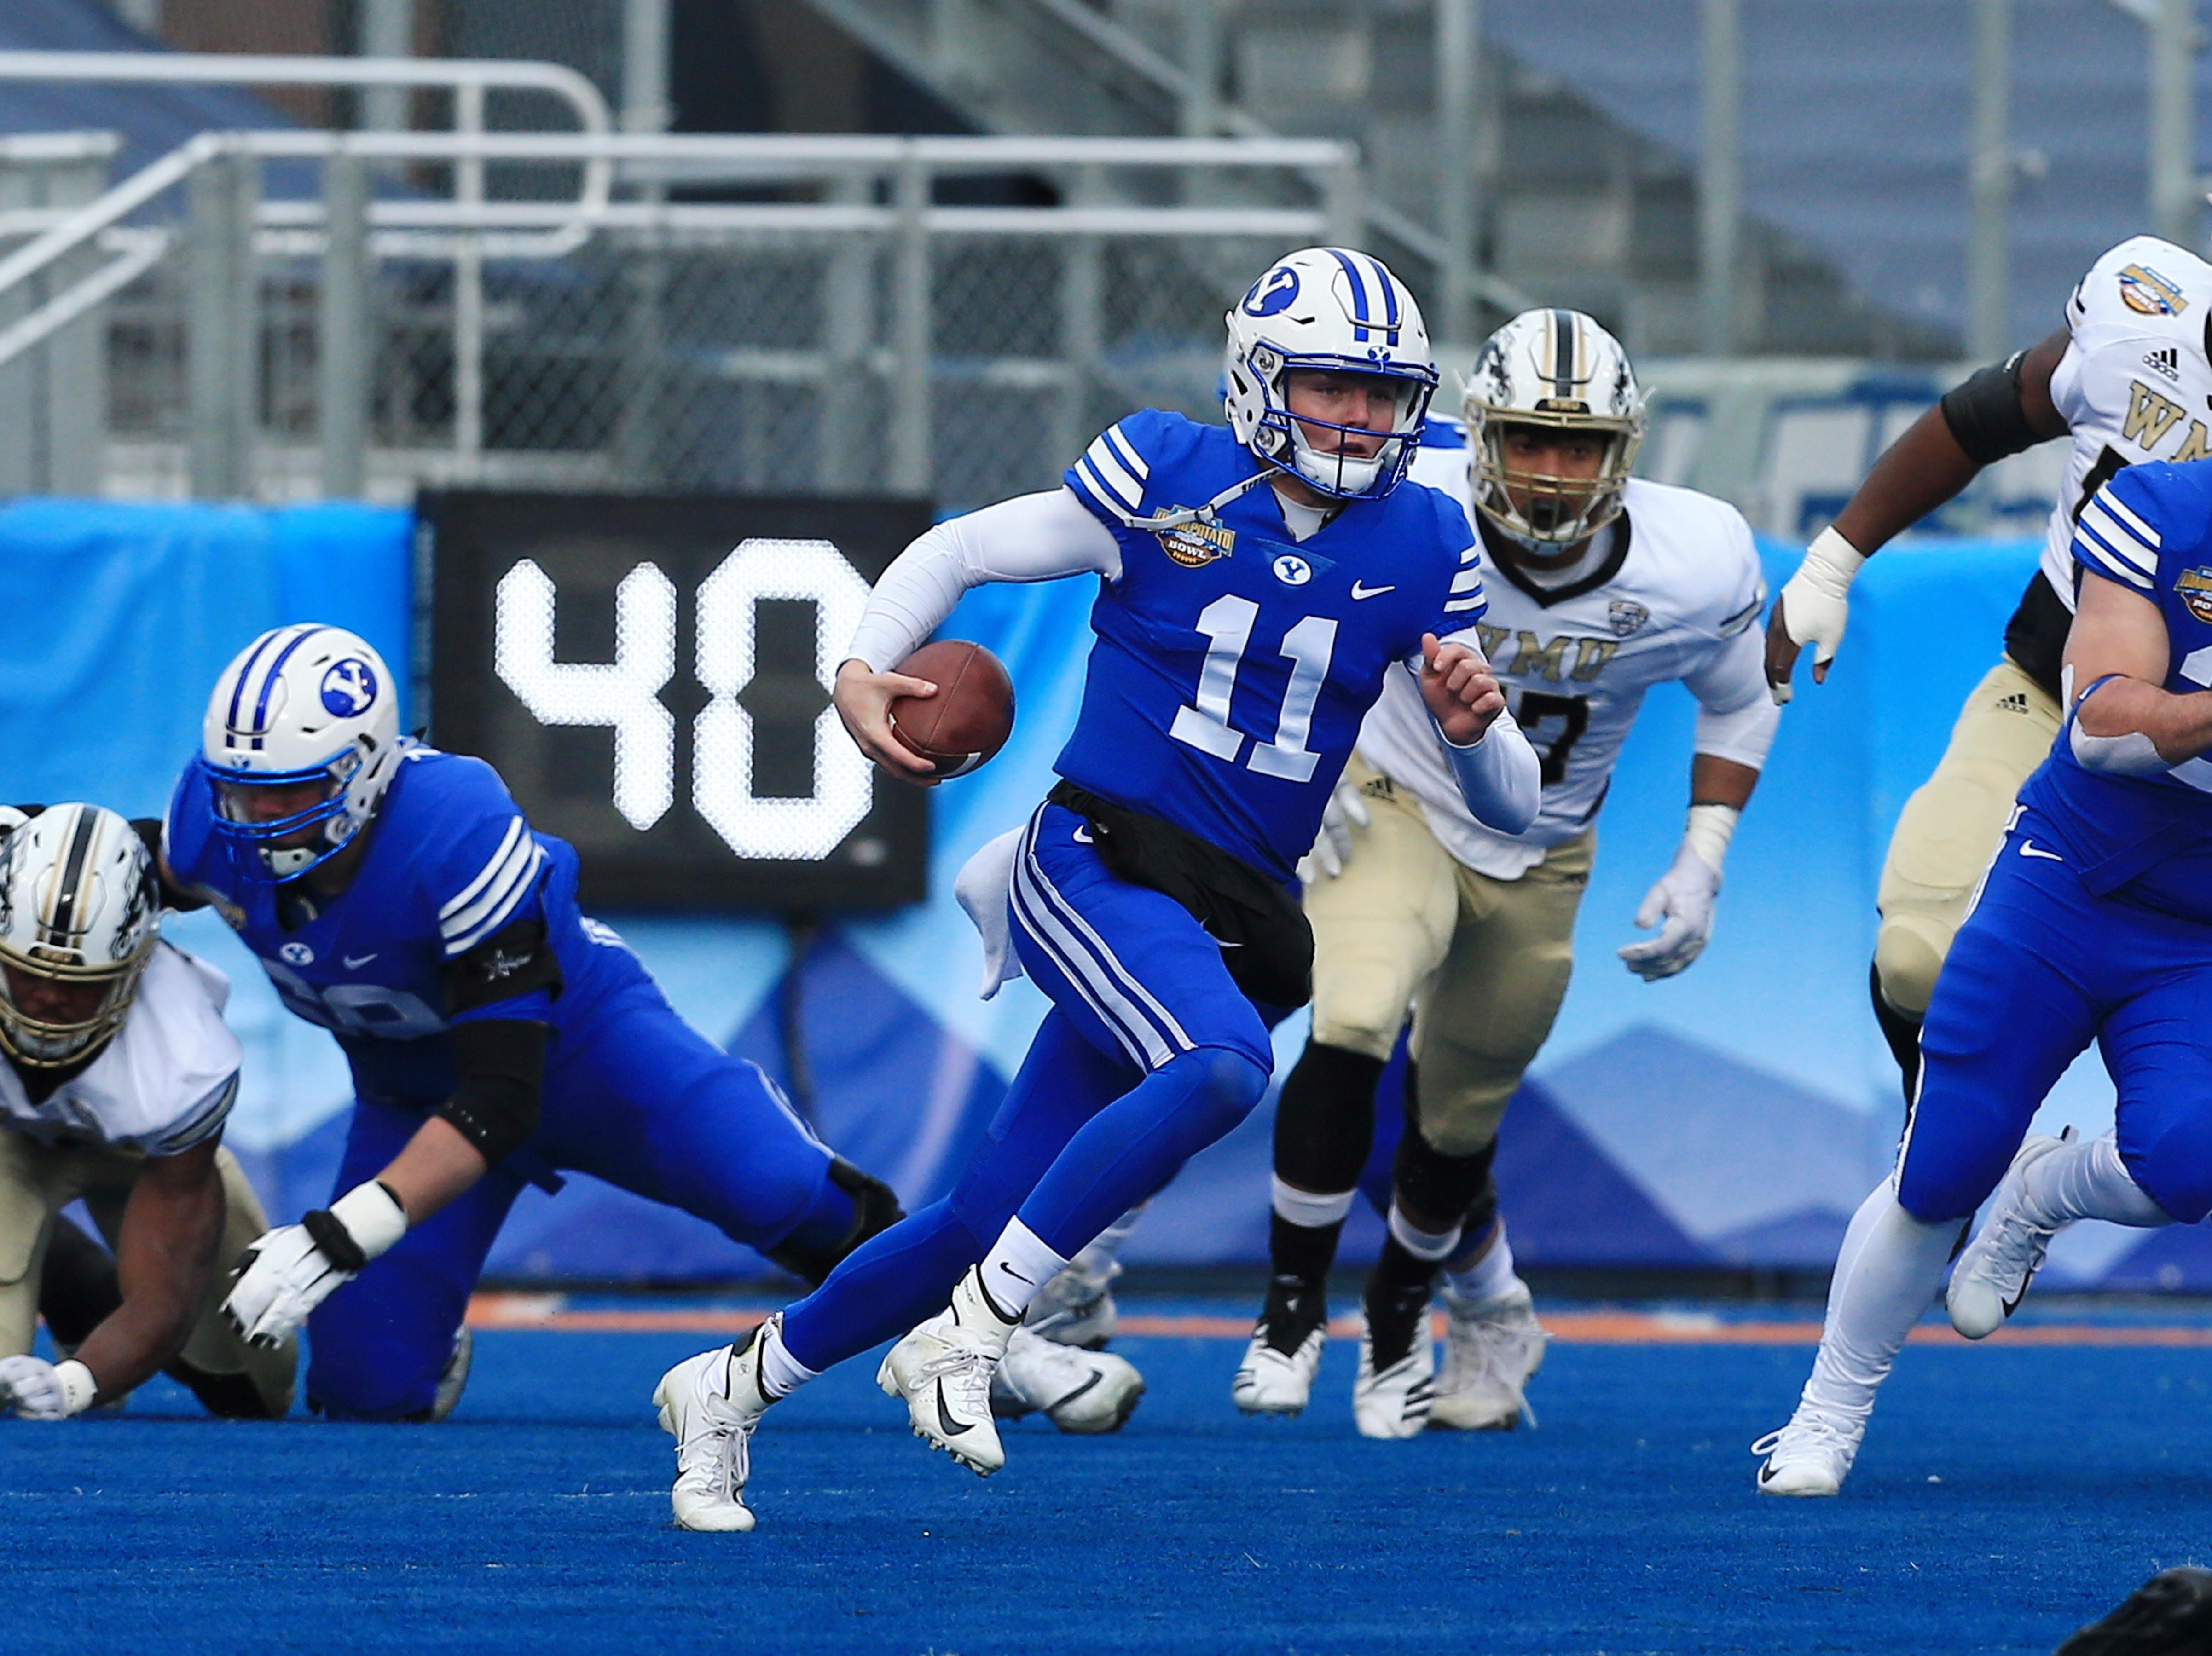 Dec 21, 2018; Boise, ID, United States; Brigham Young Cougars quarterback Zach Wilson (11) scrambles during the first half  of play against the Western Michigan Broncos at the 2018 Potato Bowl at Albertsons Stadium. Mandatory Credit: Brian Losness-USA TODAY Sports